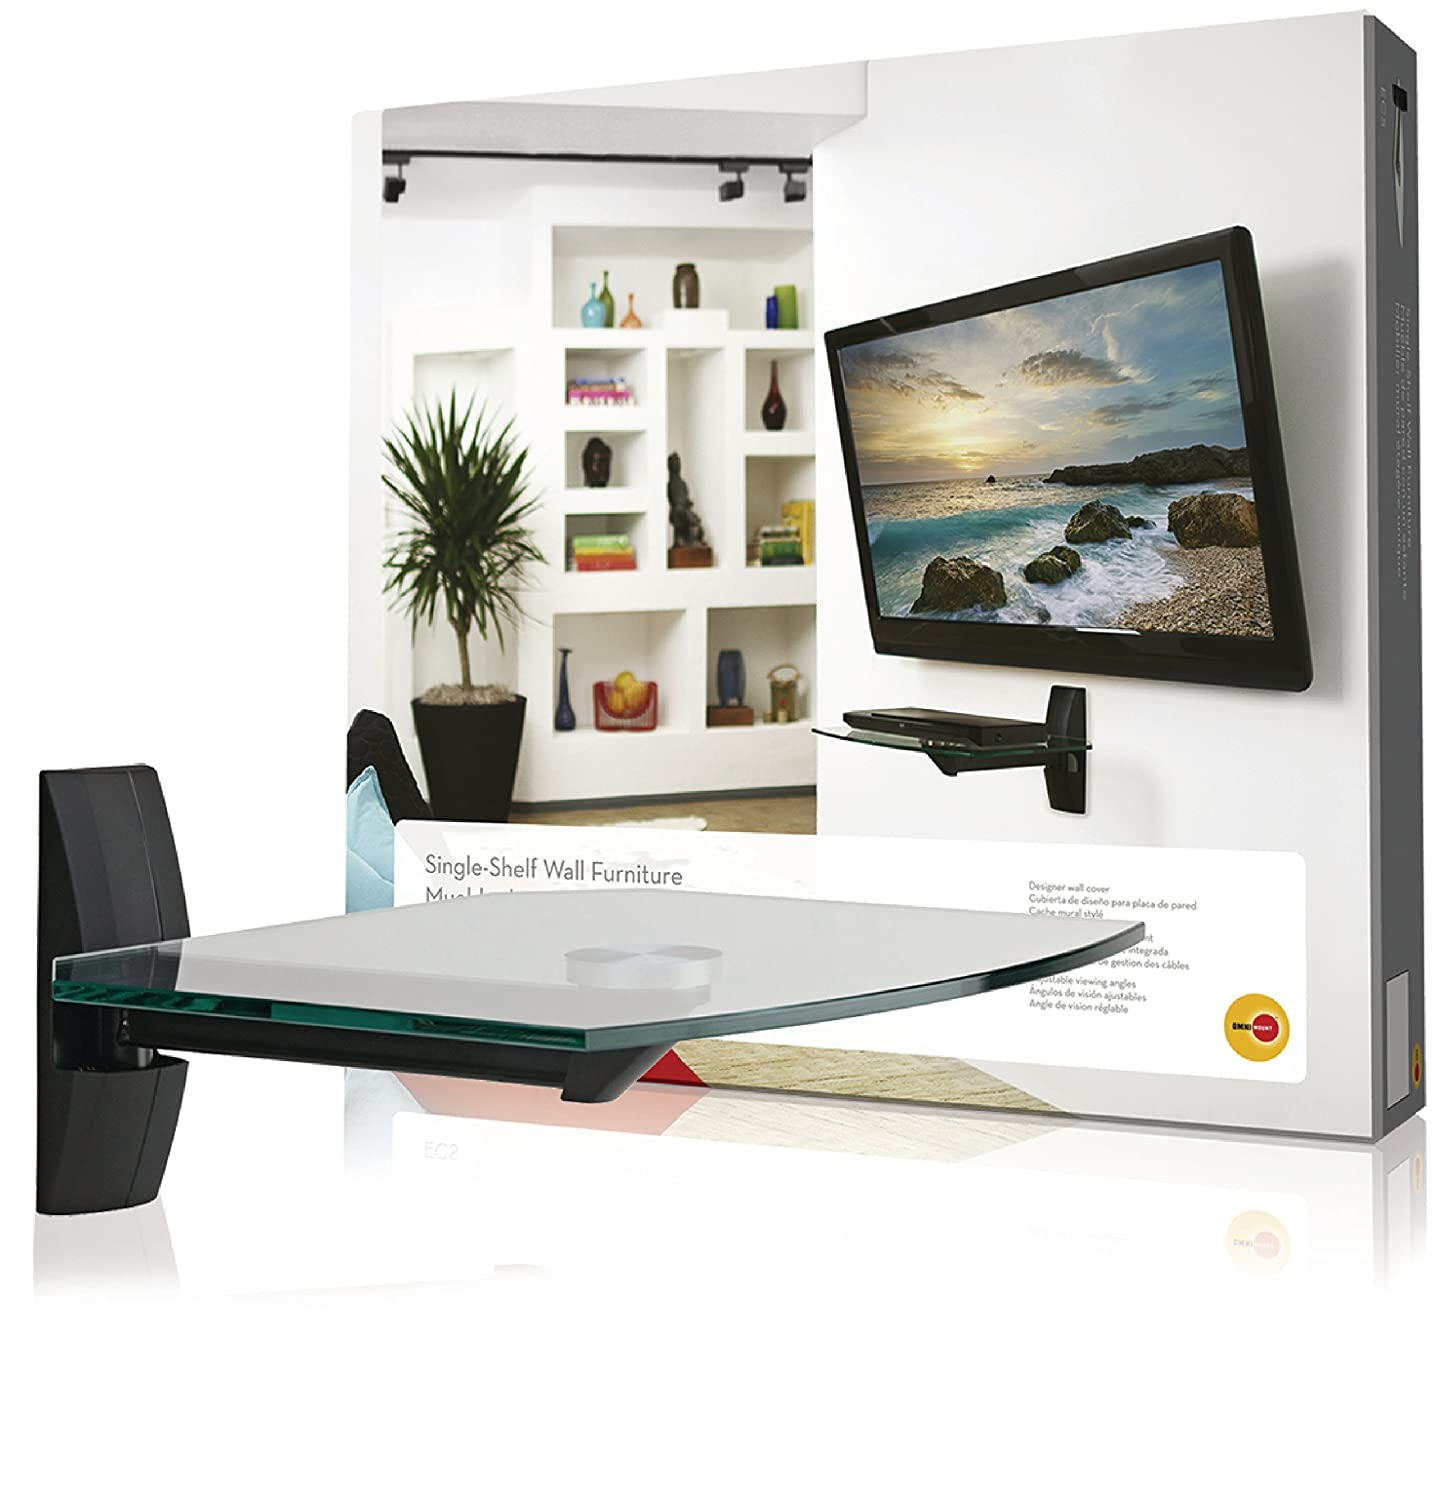 OmniMount ECSB Component Shelf Wall Shelf for TVs and Video Accessories